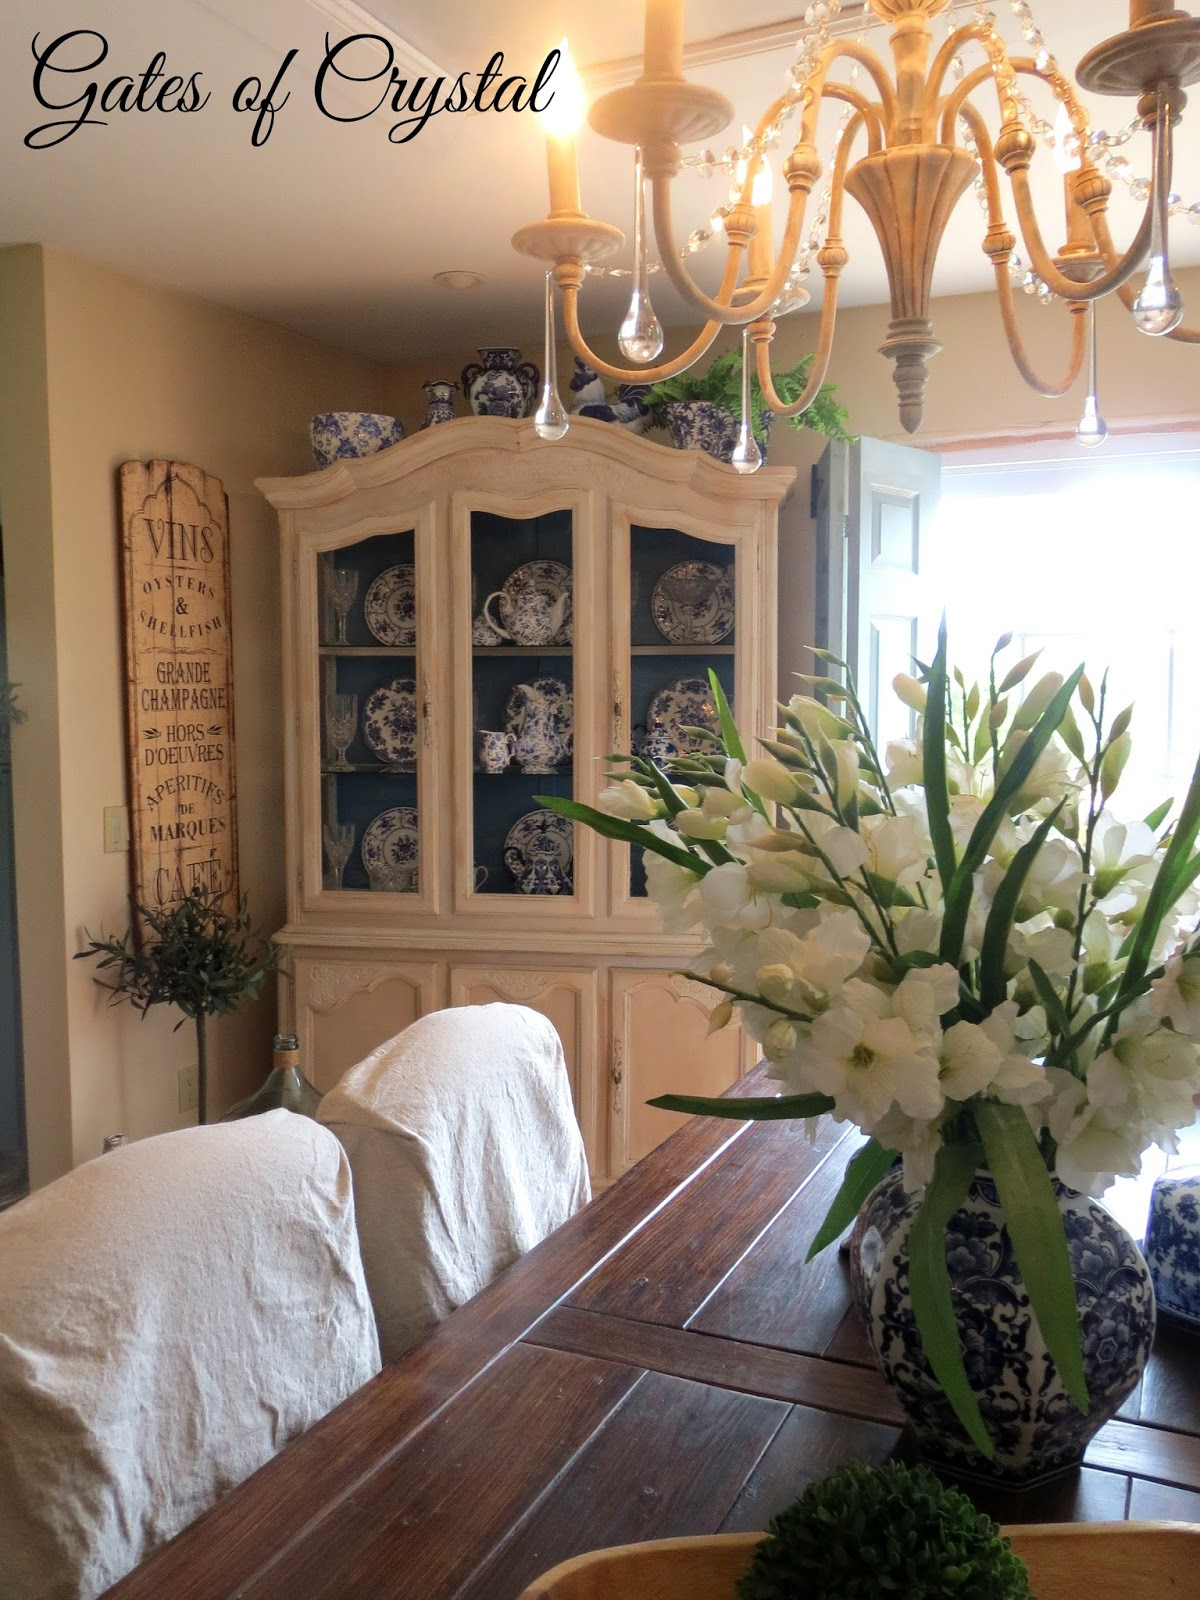 Gates Of Crystal Painting A China Cabinet